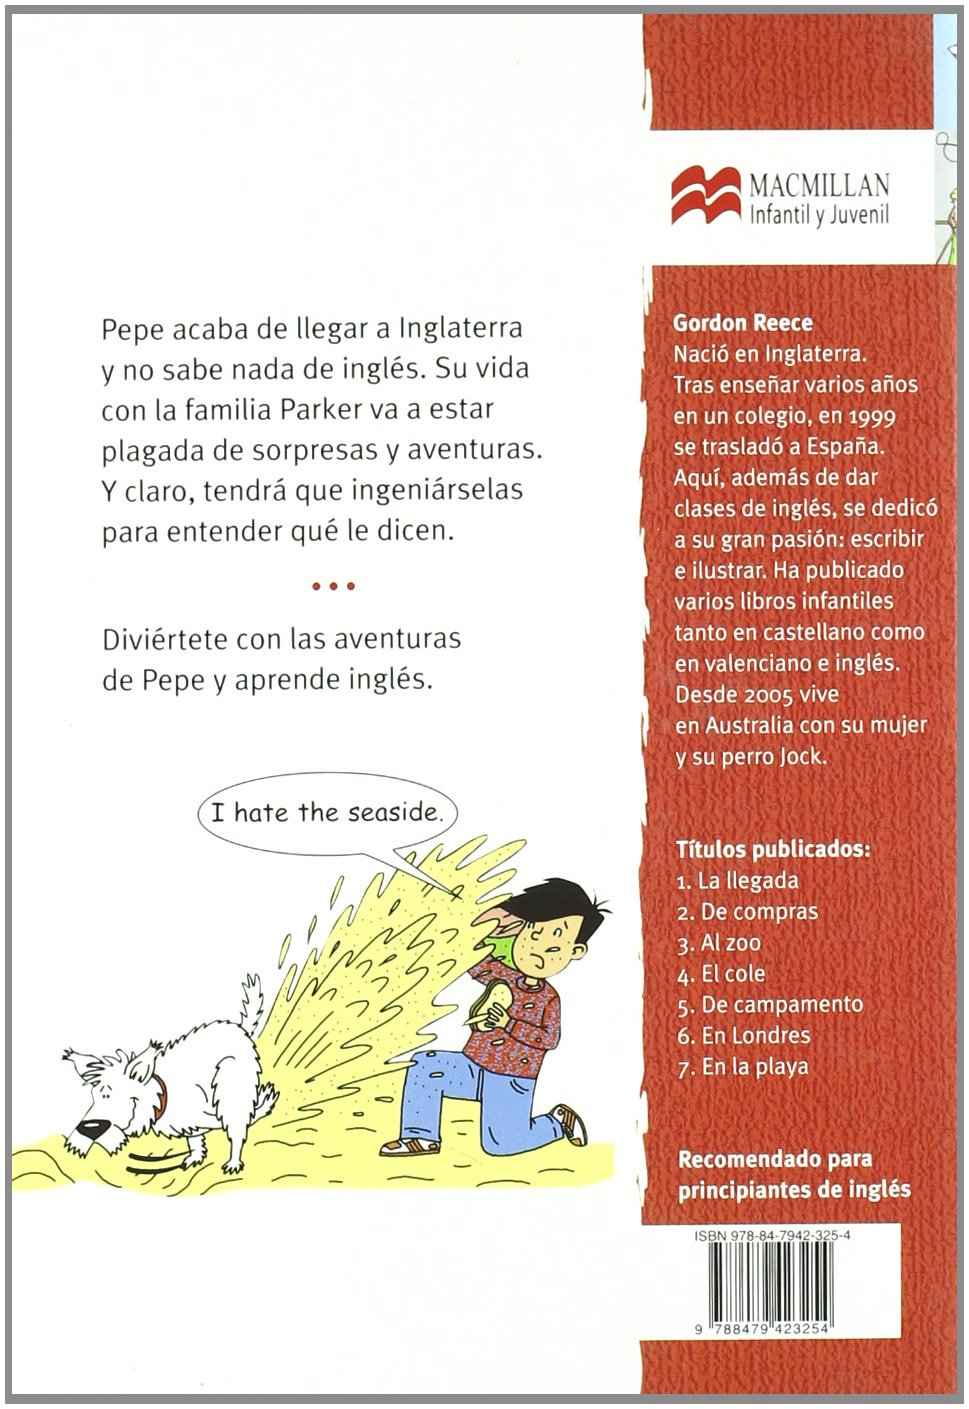 Amazon.com: En la playa (Pepe en Inglaterra) (Spanish Edition) (9788479423254): Gordon Reece: Books